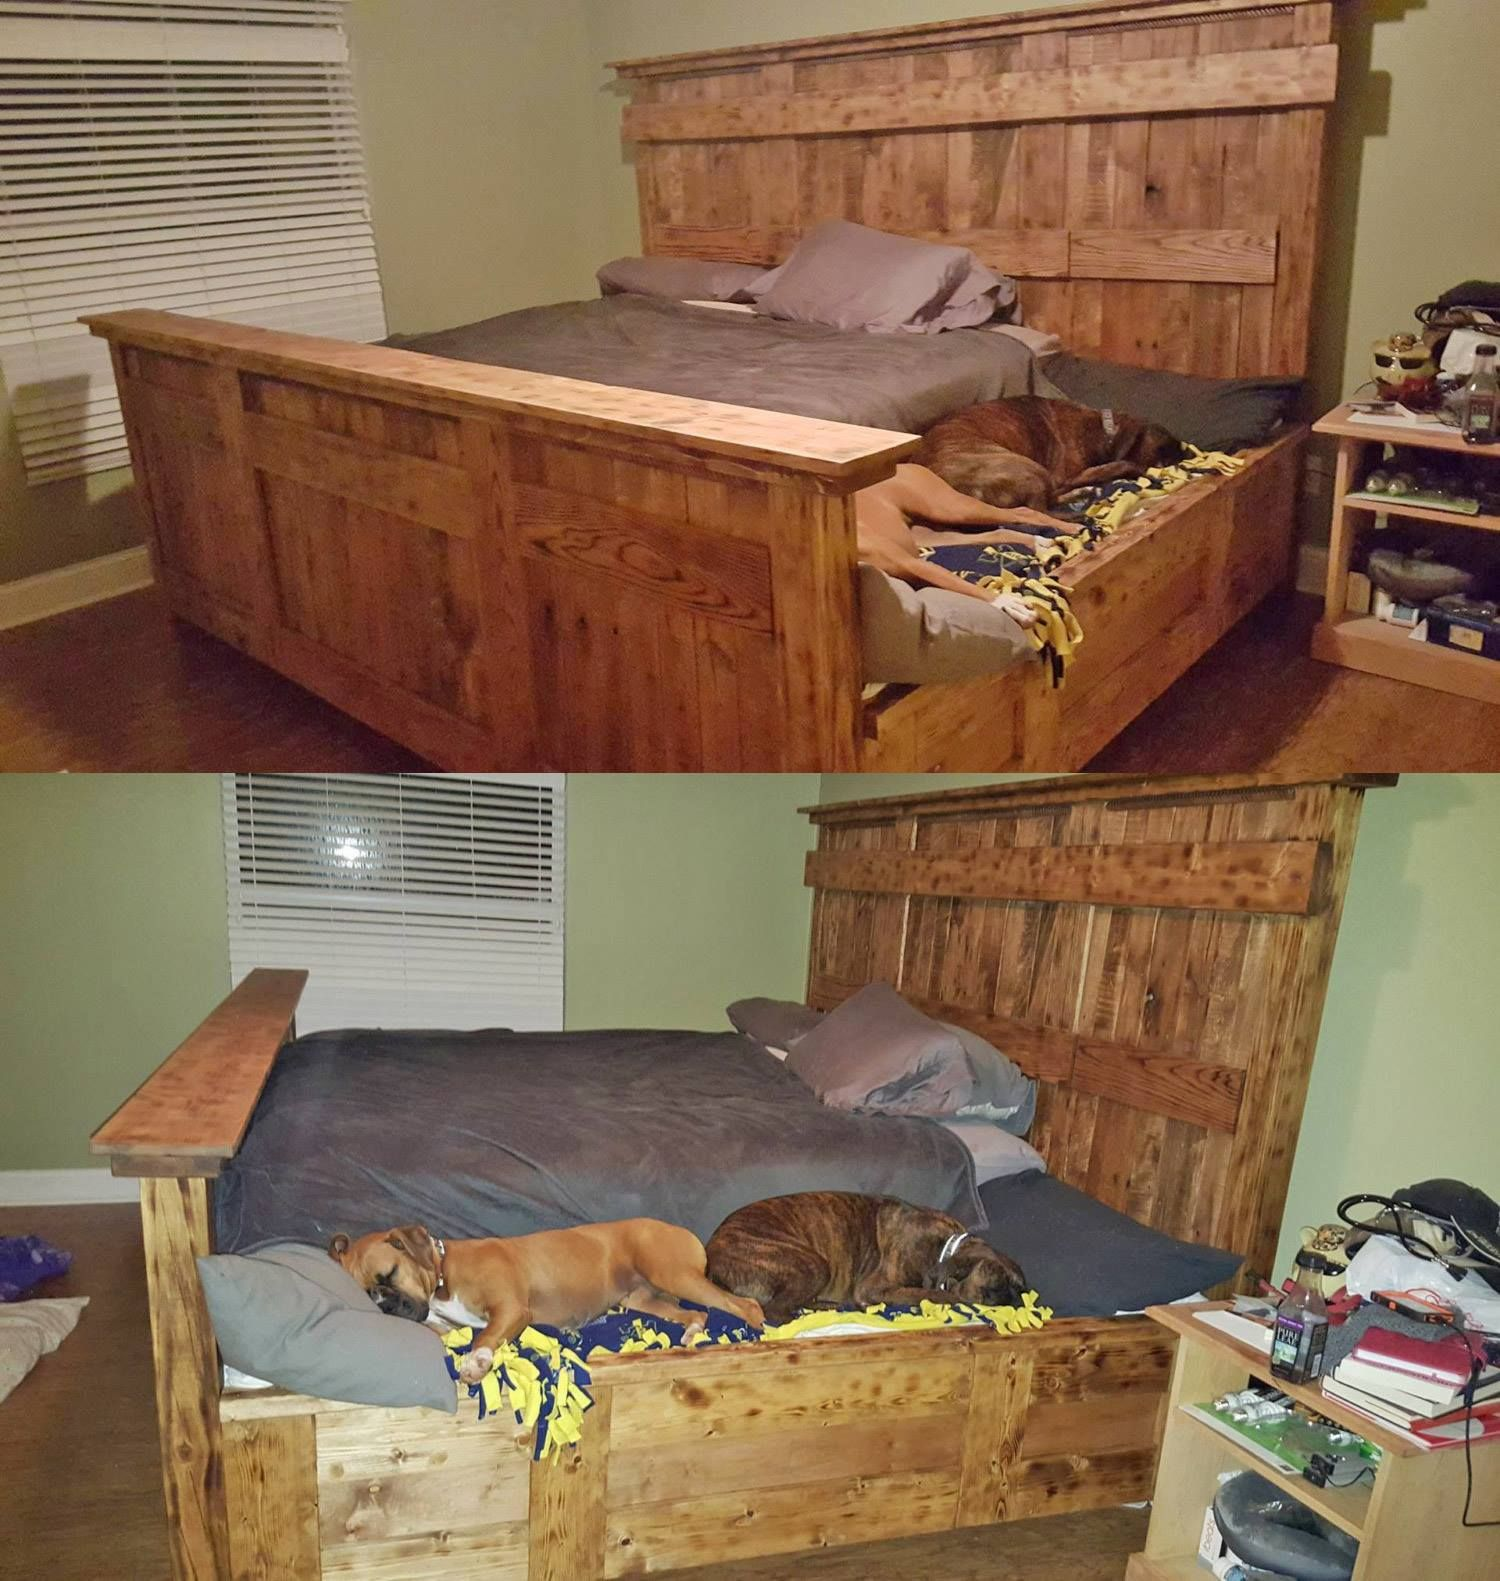 This Is Genius This Wooden King Size Bed Frame Leaves Extra Room To The Side Of Your Mattress For A Sleeping Area For Your Dogs Home Dog Bed King Bed Frame